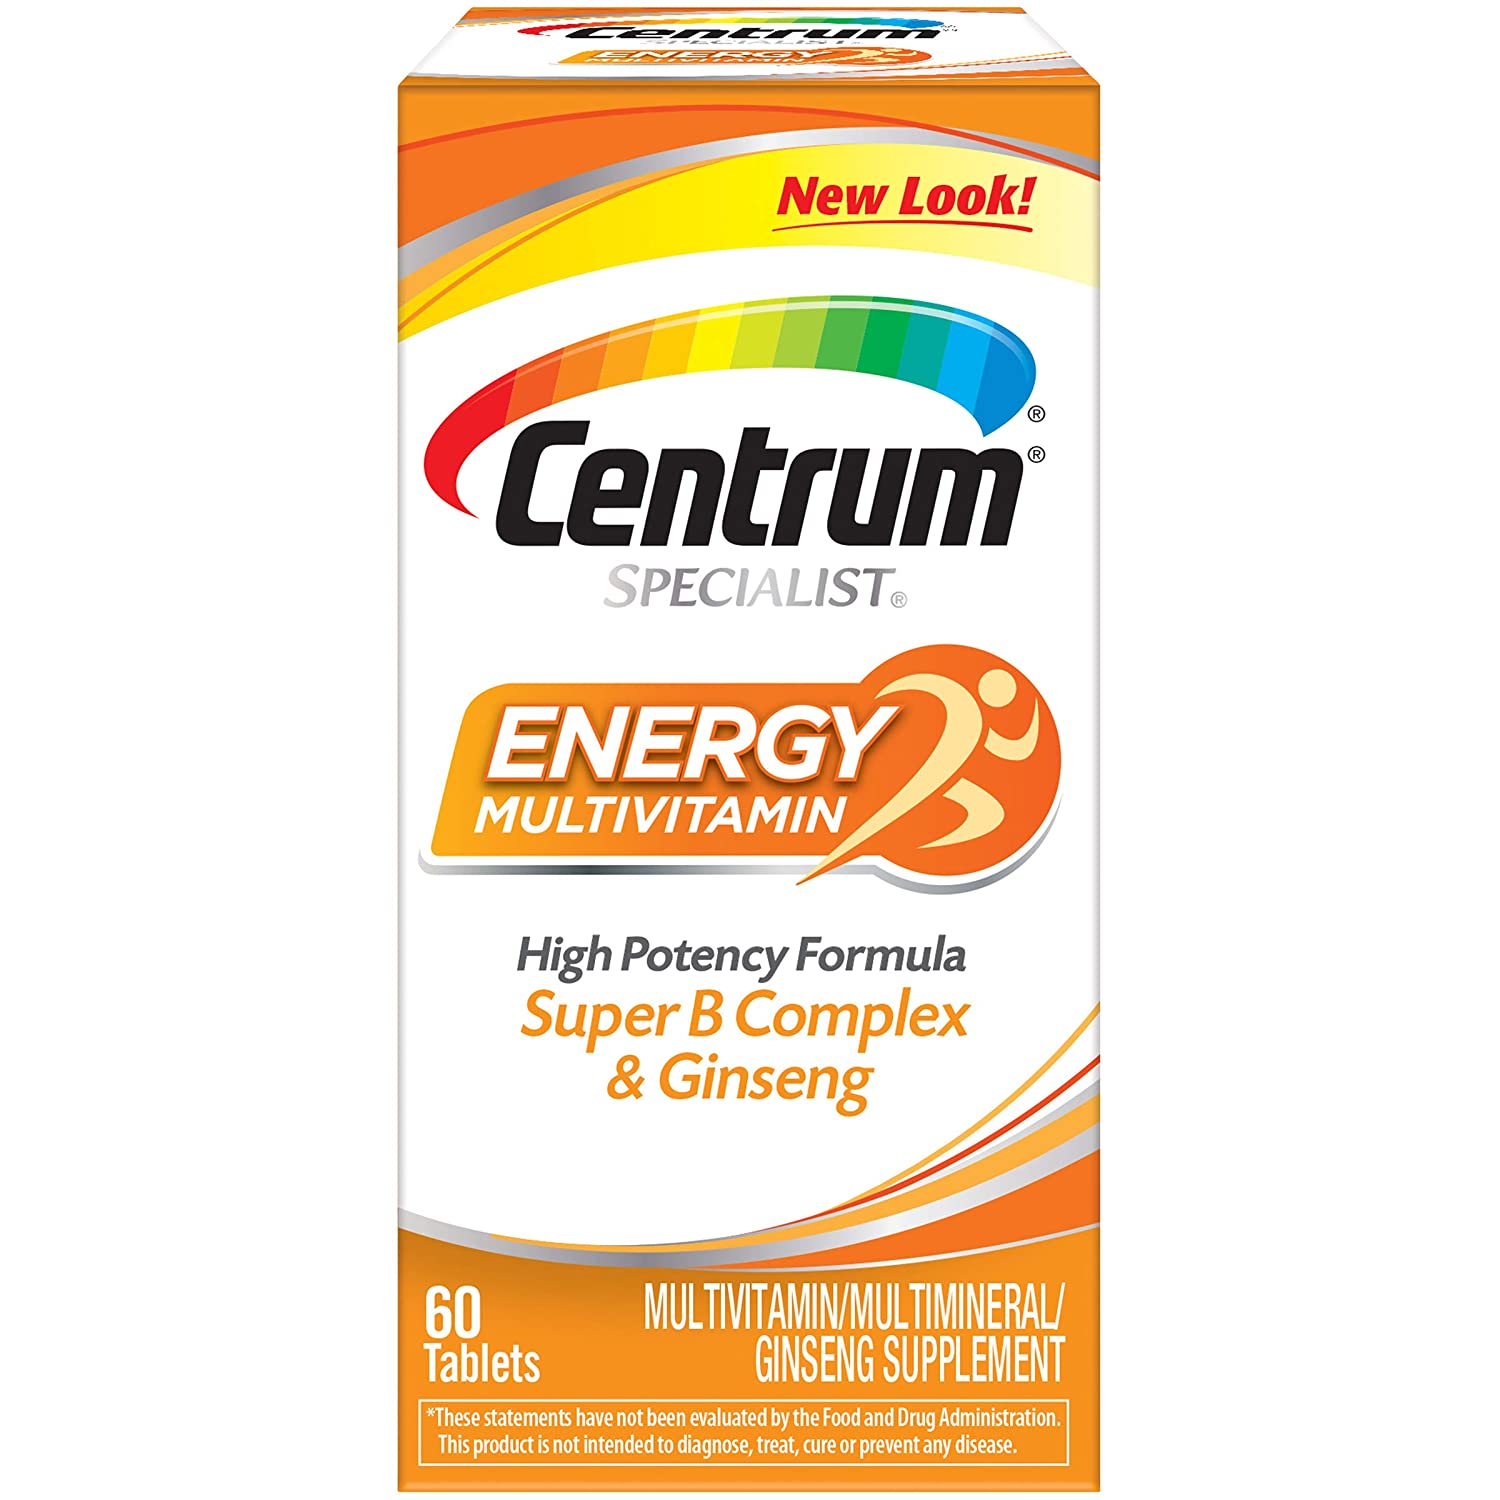 Vitamins For Energy >> Centrum Specialist Energy Complete Multivitamin Supplement 60 Count Tablets